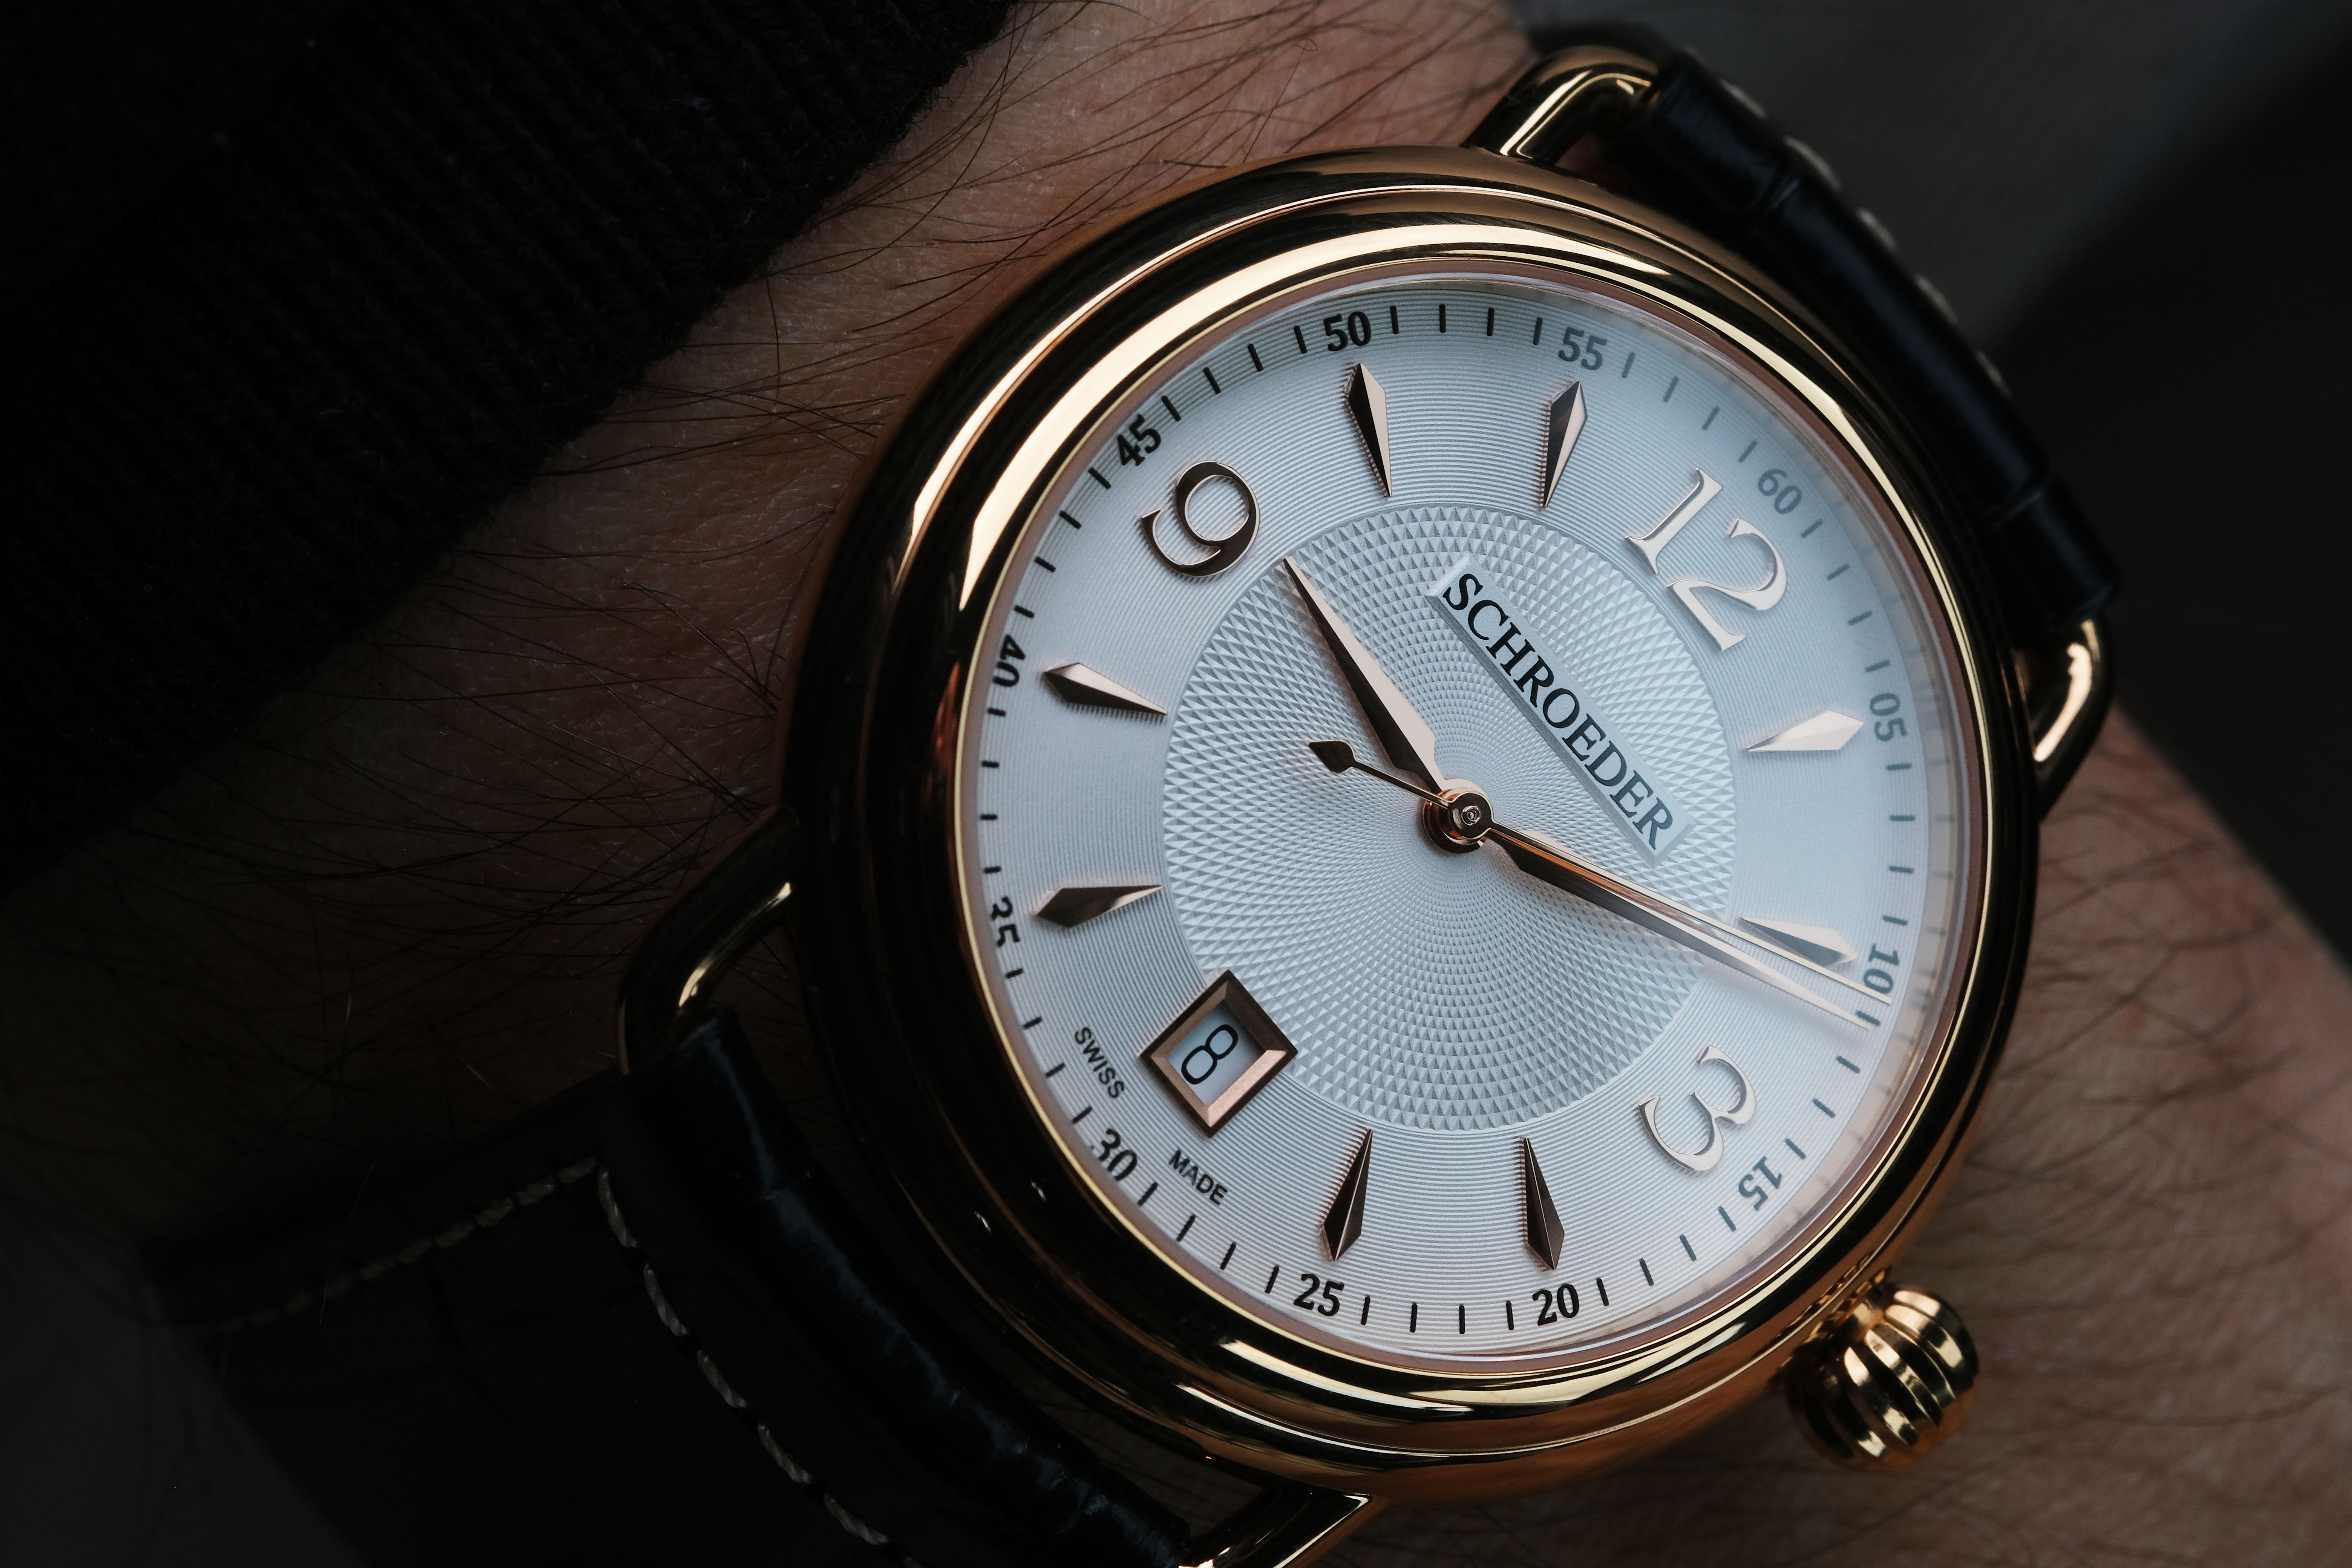 NEW FACE FOR THE ETRIER COLLECTION OF SCHROEDER TIMEPIECES WATCHES